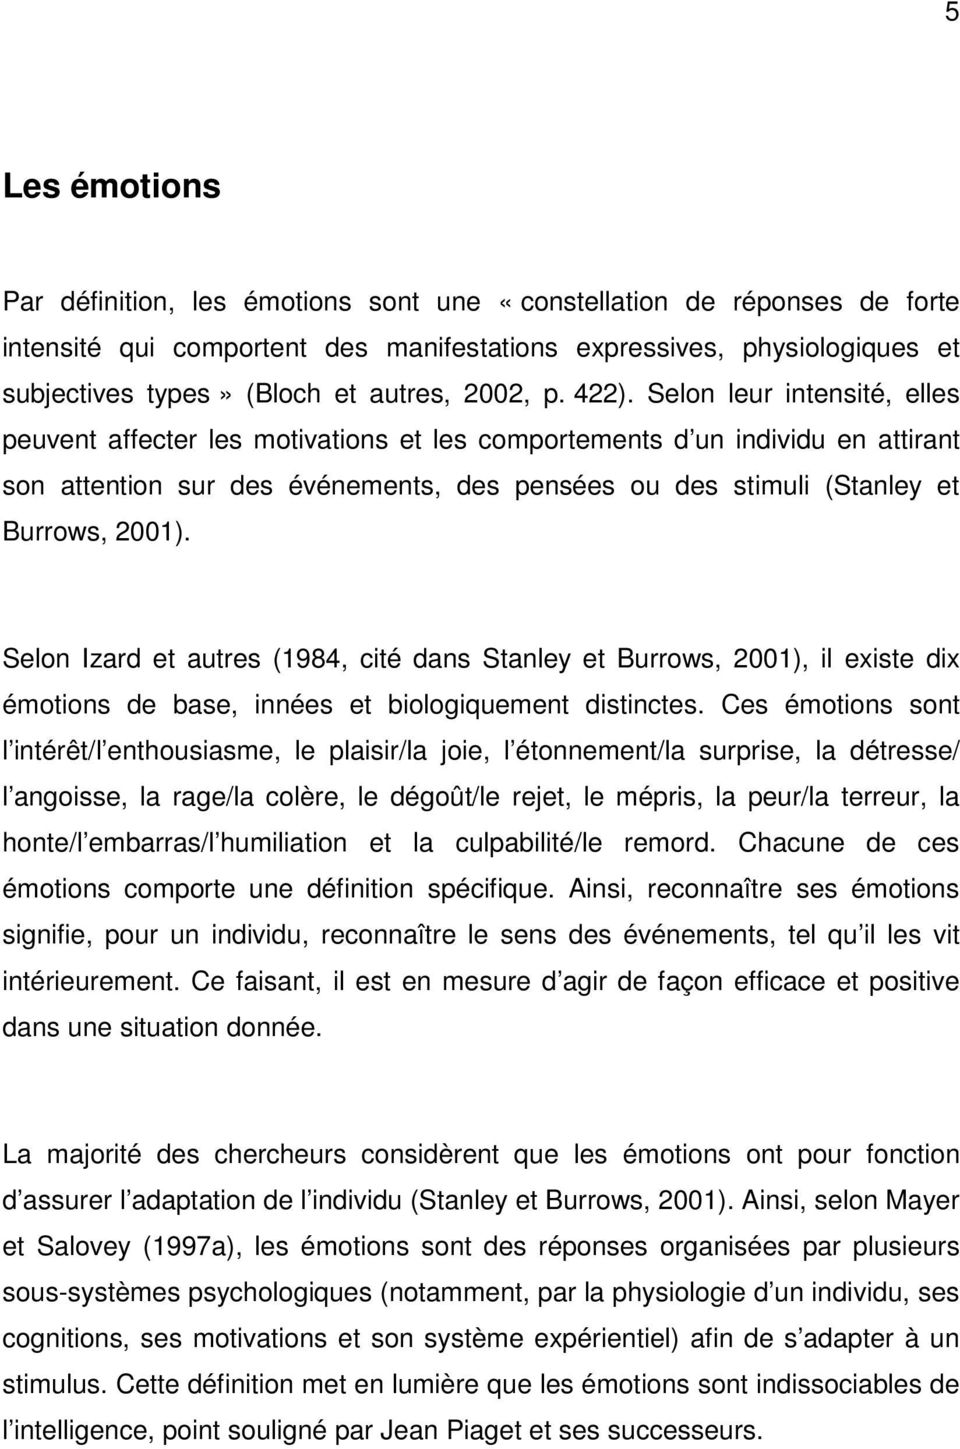 Selon leur intensité, elles peuvent affecter les motivations et les comportements d un individu en attirant son attention sur des événements, des pensées ou des stimuli (Stanley et Burrows, 2001).